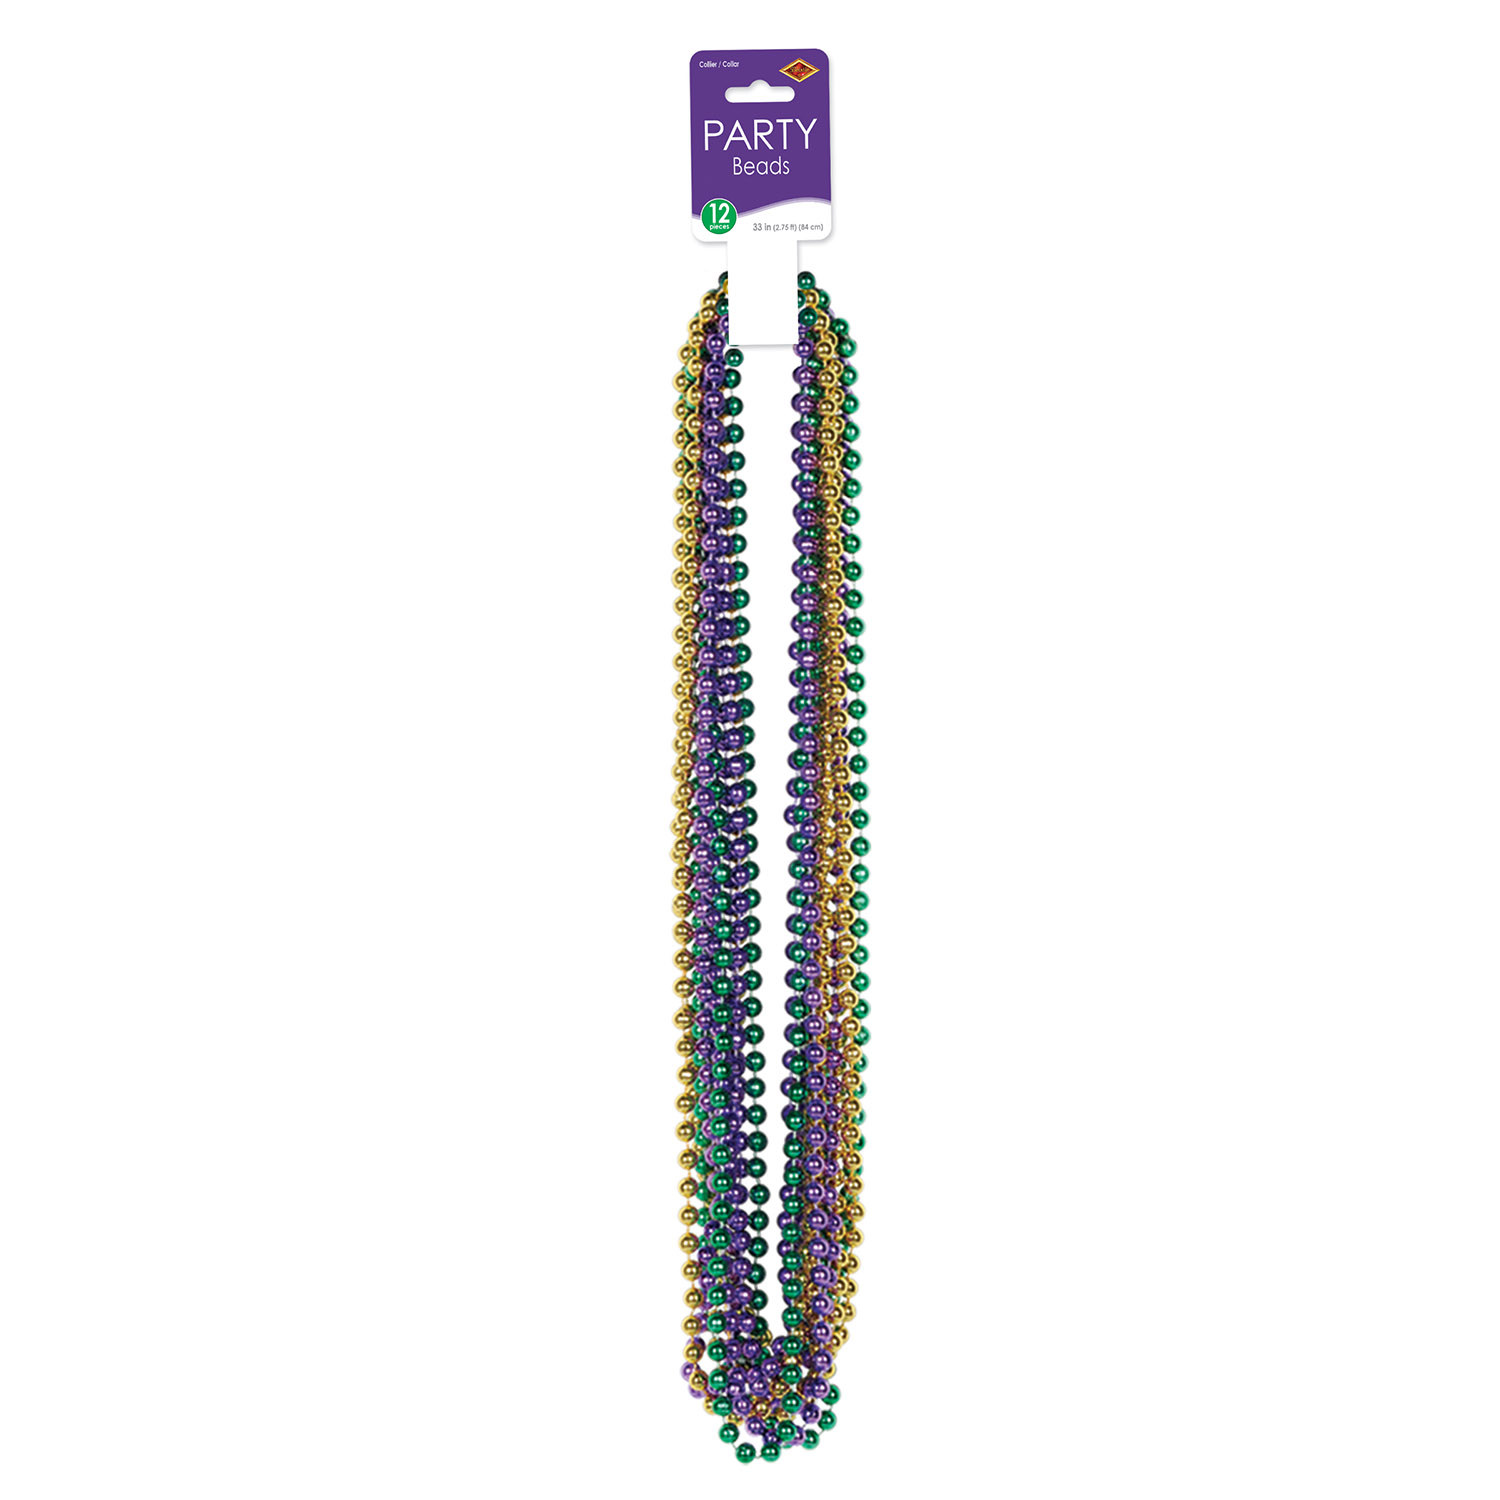 Small Round Beads (Pack of 144)-Gold Green Purple purple, green, gold, yellow, beads, mardi gras, 33 inches, small, round, metallic,